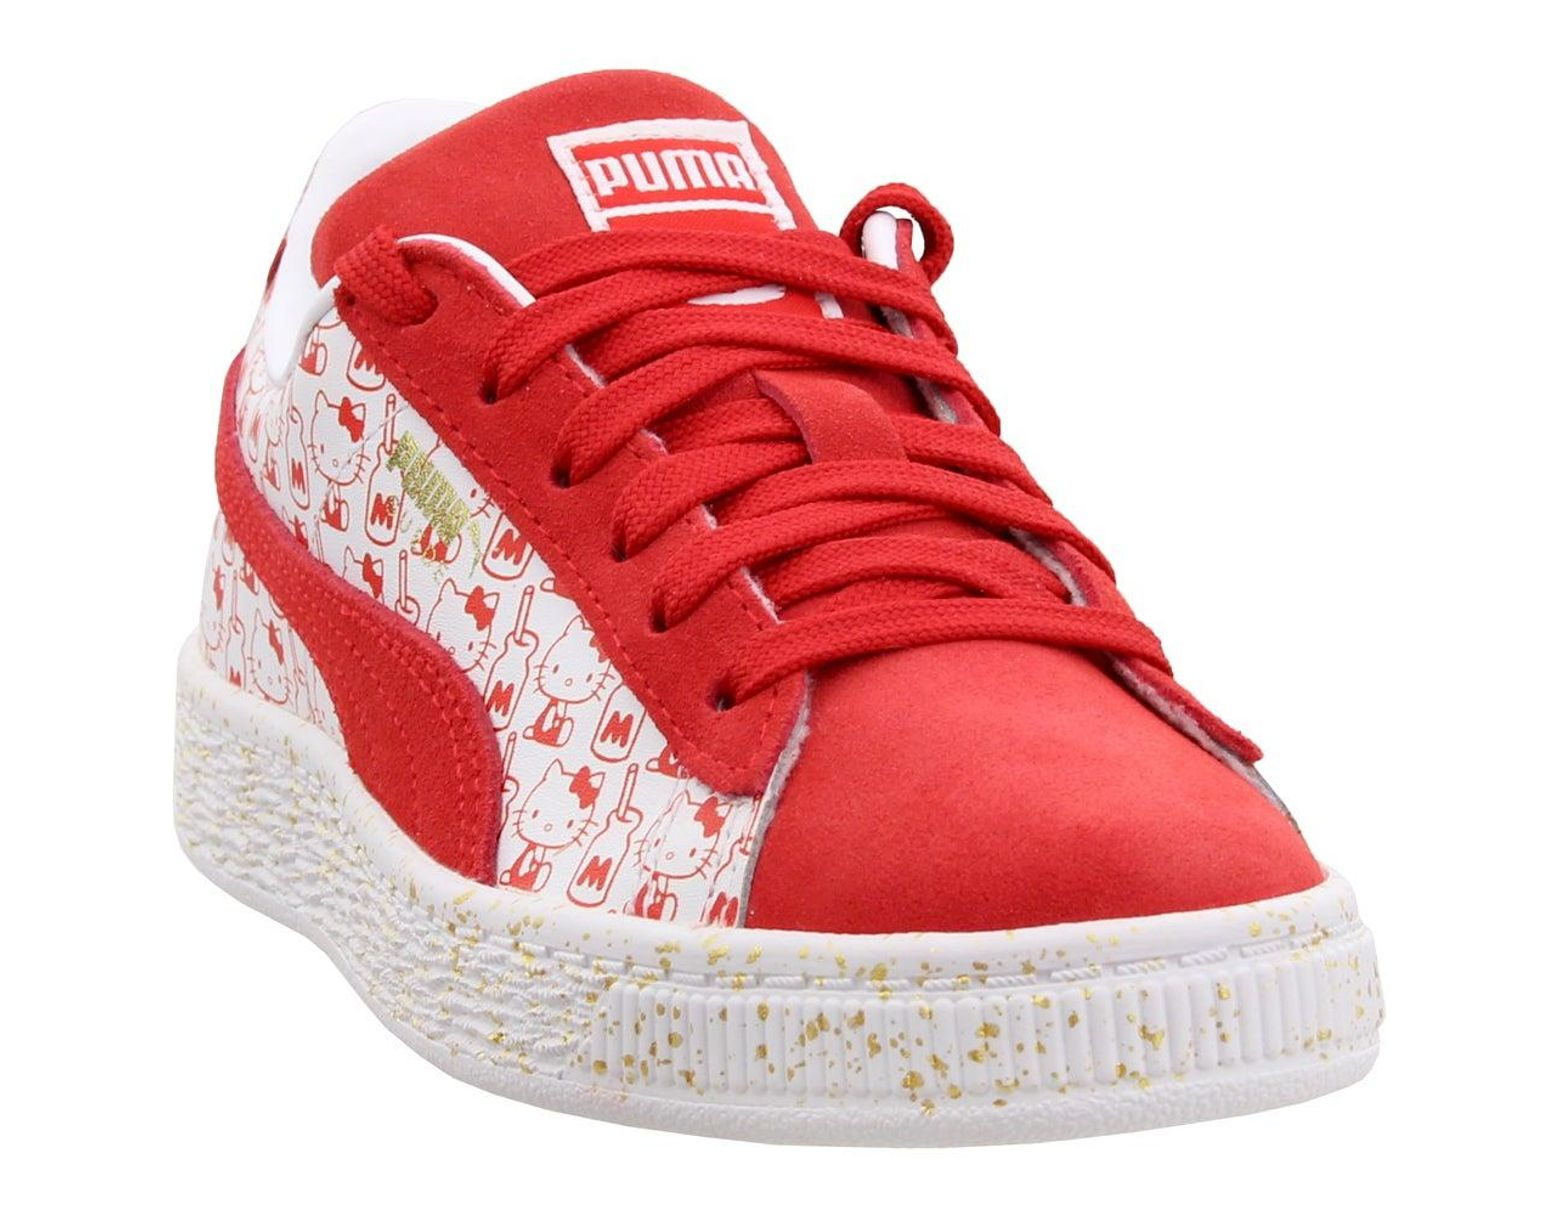 sports shoes 48d83 49442 Women's Red Suede Classic X Hello Kitty Sneakers